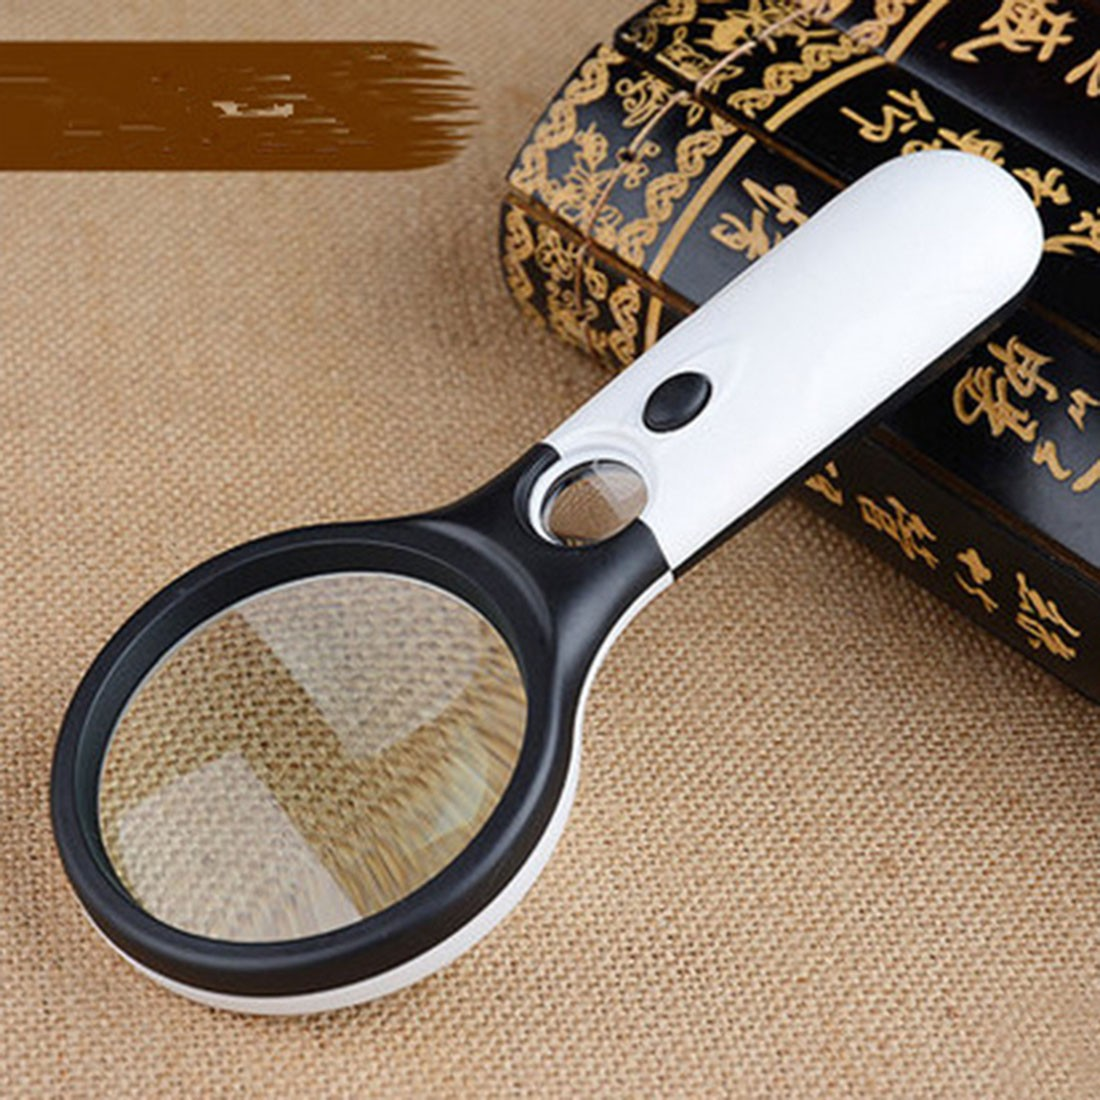 3 Led Lights 3X 45X Handheld Reading Magnifier Lens Magnifier Jewelry Loupe Magnifying Glass New Style Newest High Quality